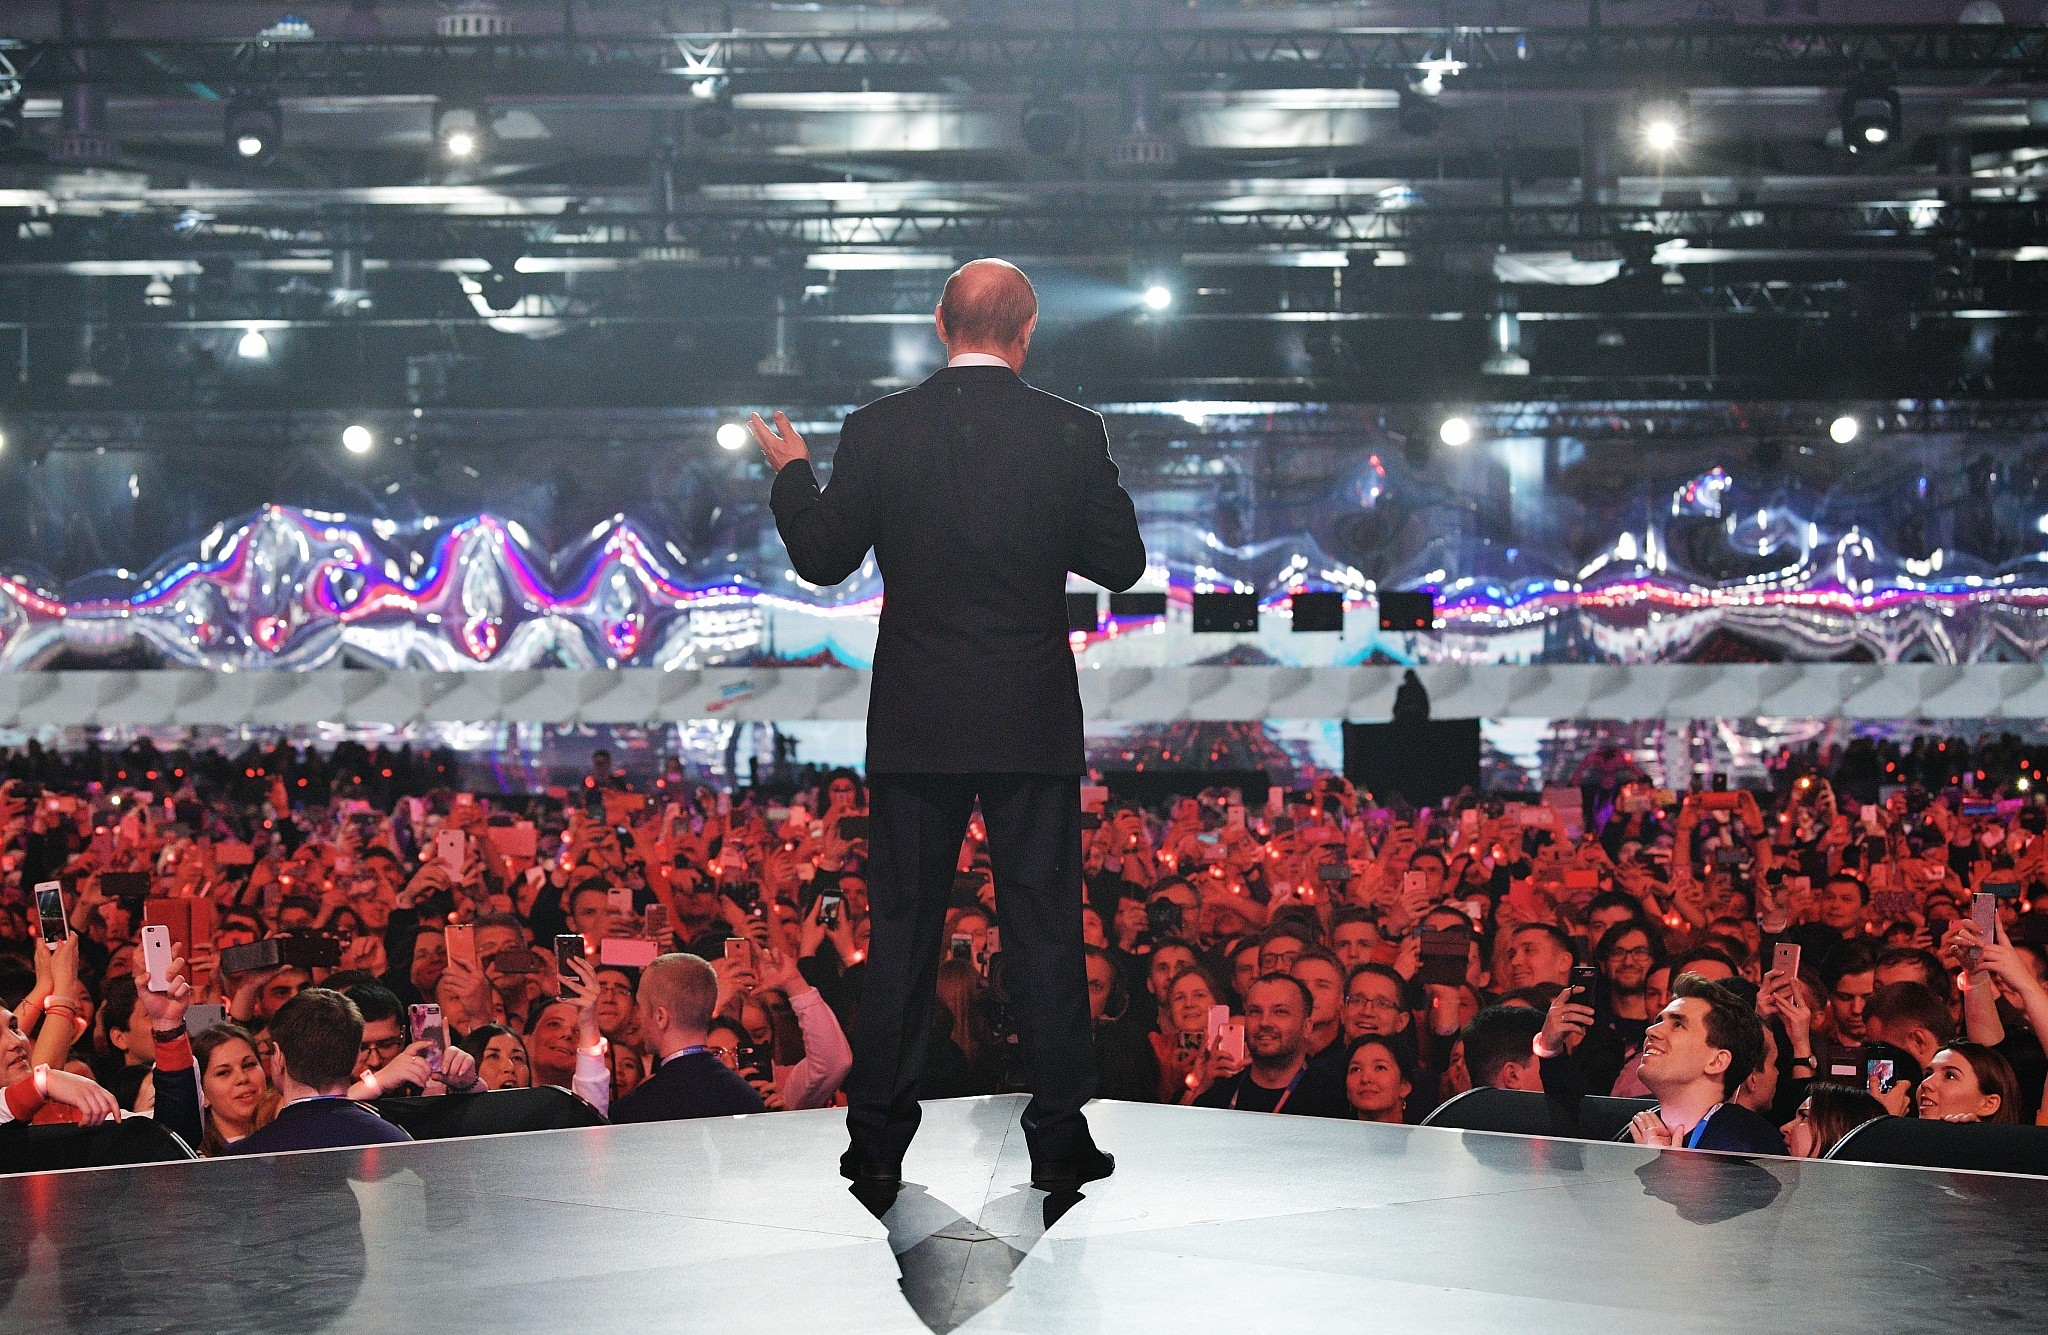 Russian President Vladimir Putin gestures while speaking at a youth forum